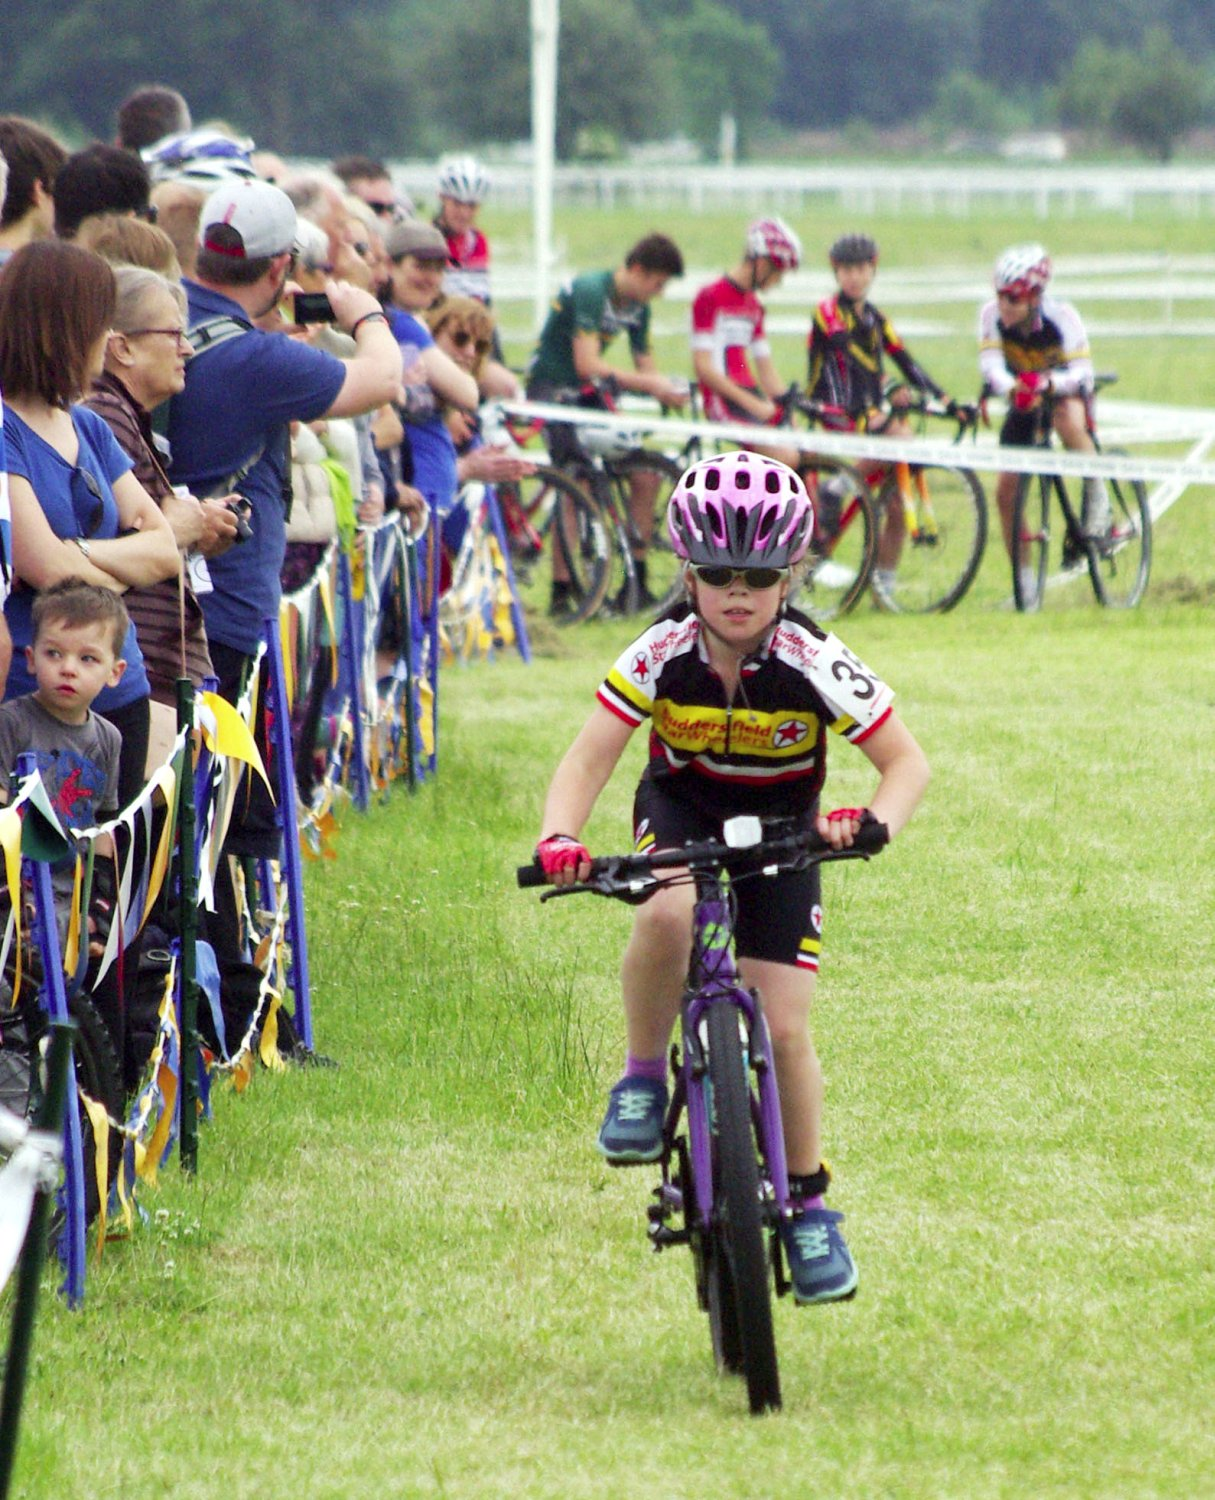 Are you the fastest racer of your age?